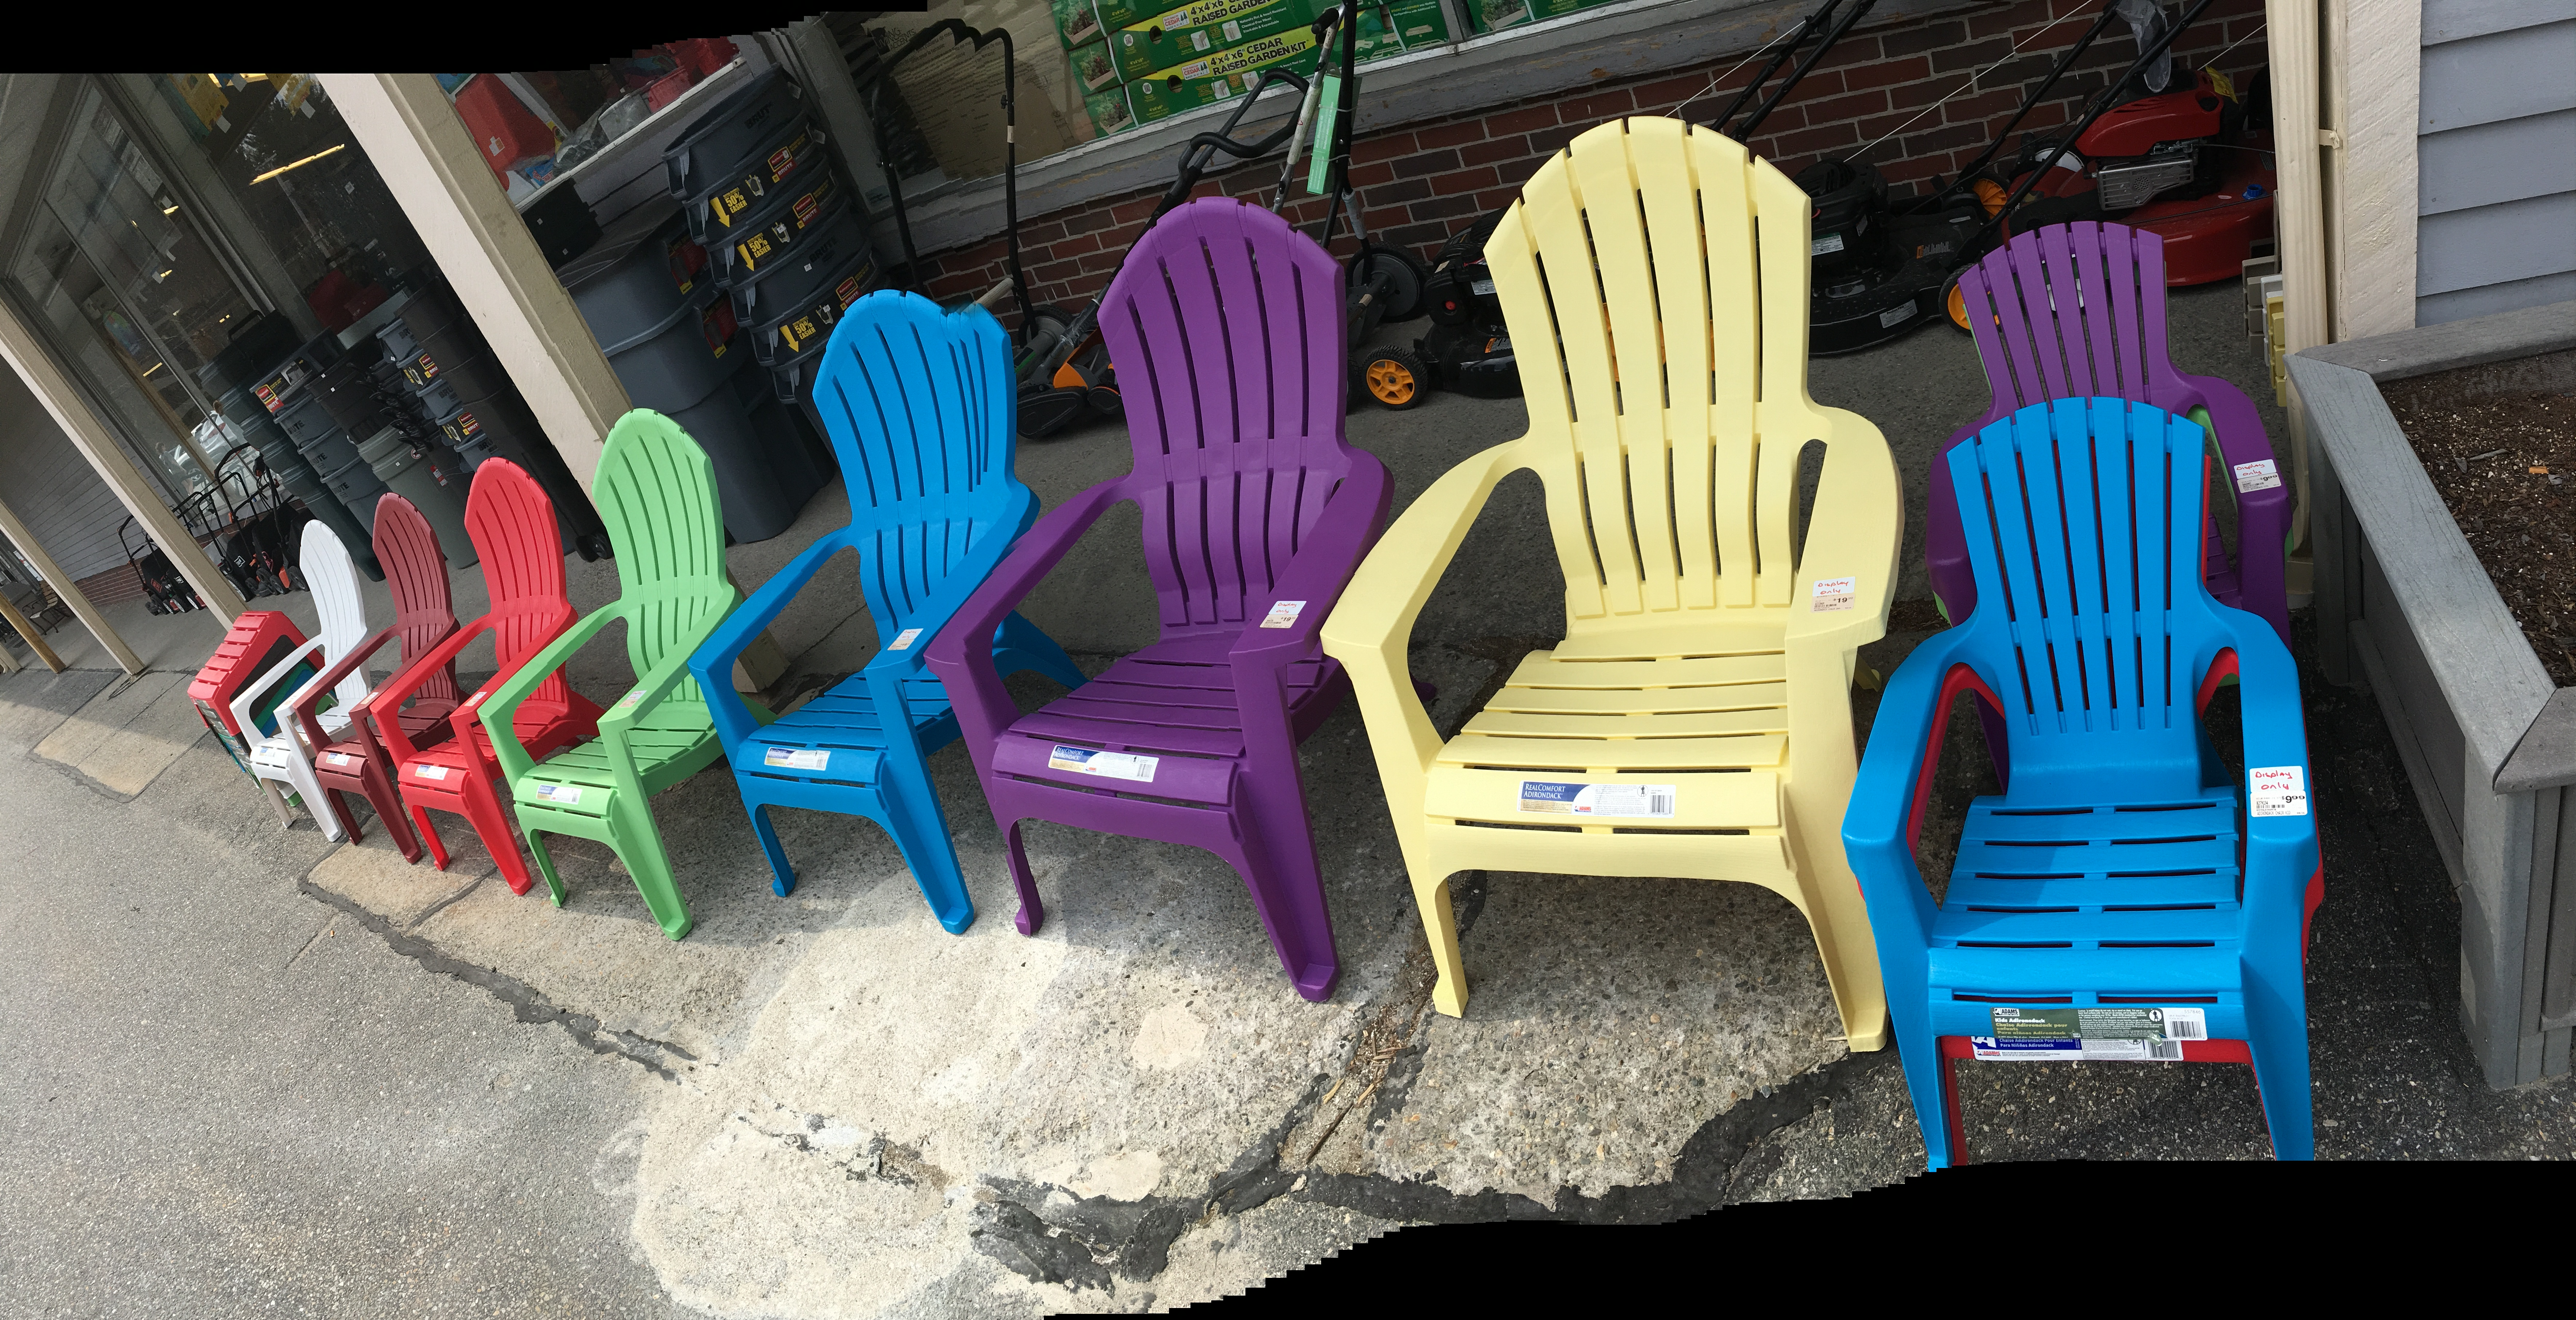 FileAdirondack chairs.jpg & File:Adirondack chairs.jpg - Wikimedia Commons